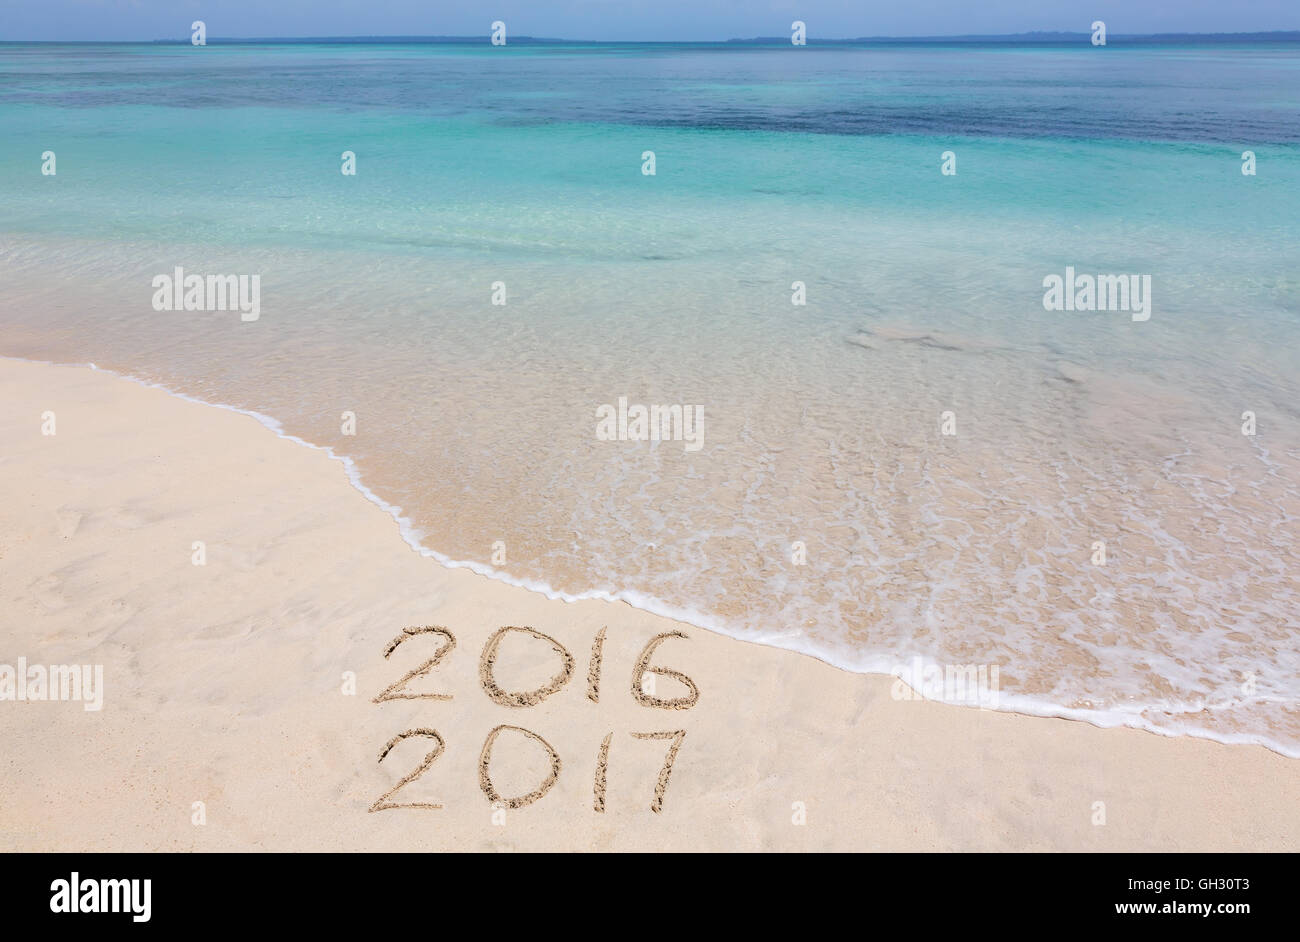 Years 2016 and 2017 are inscribed on sandy beach - Stock Image